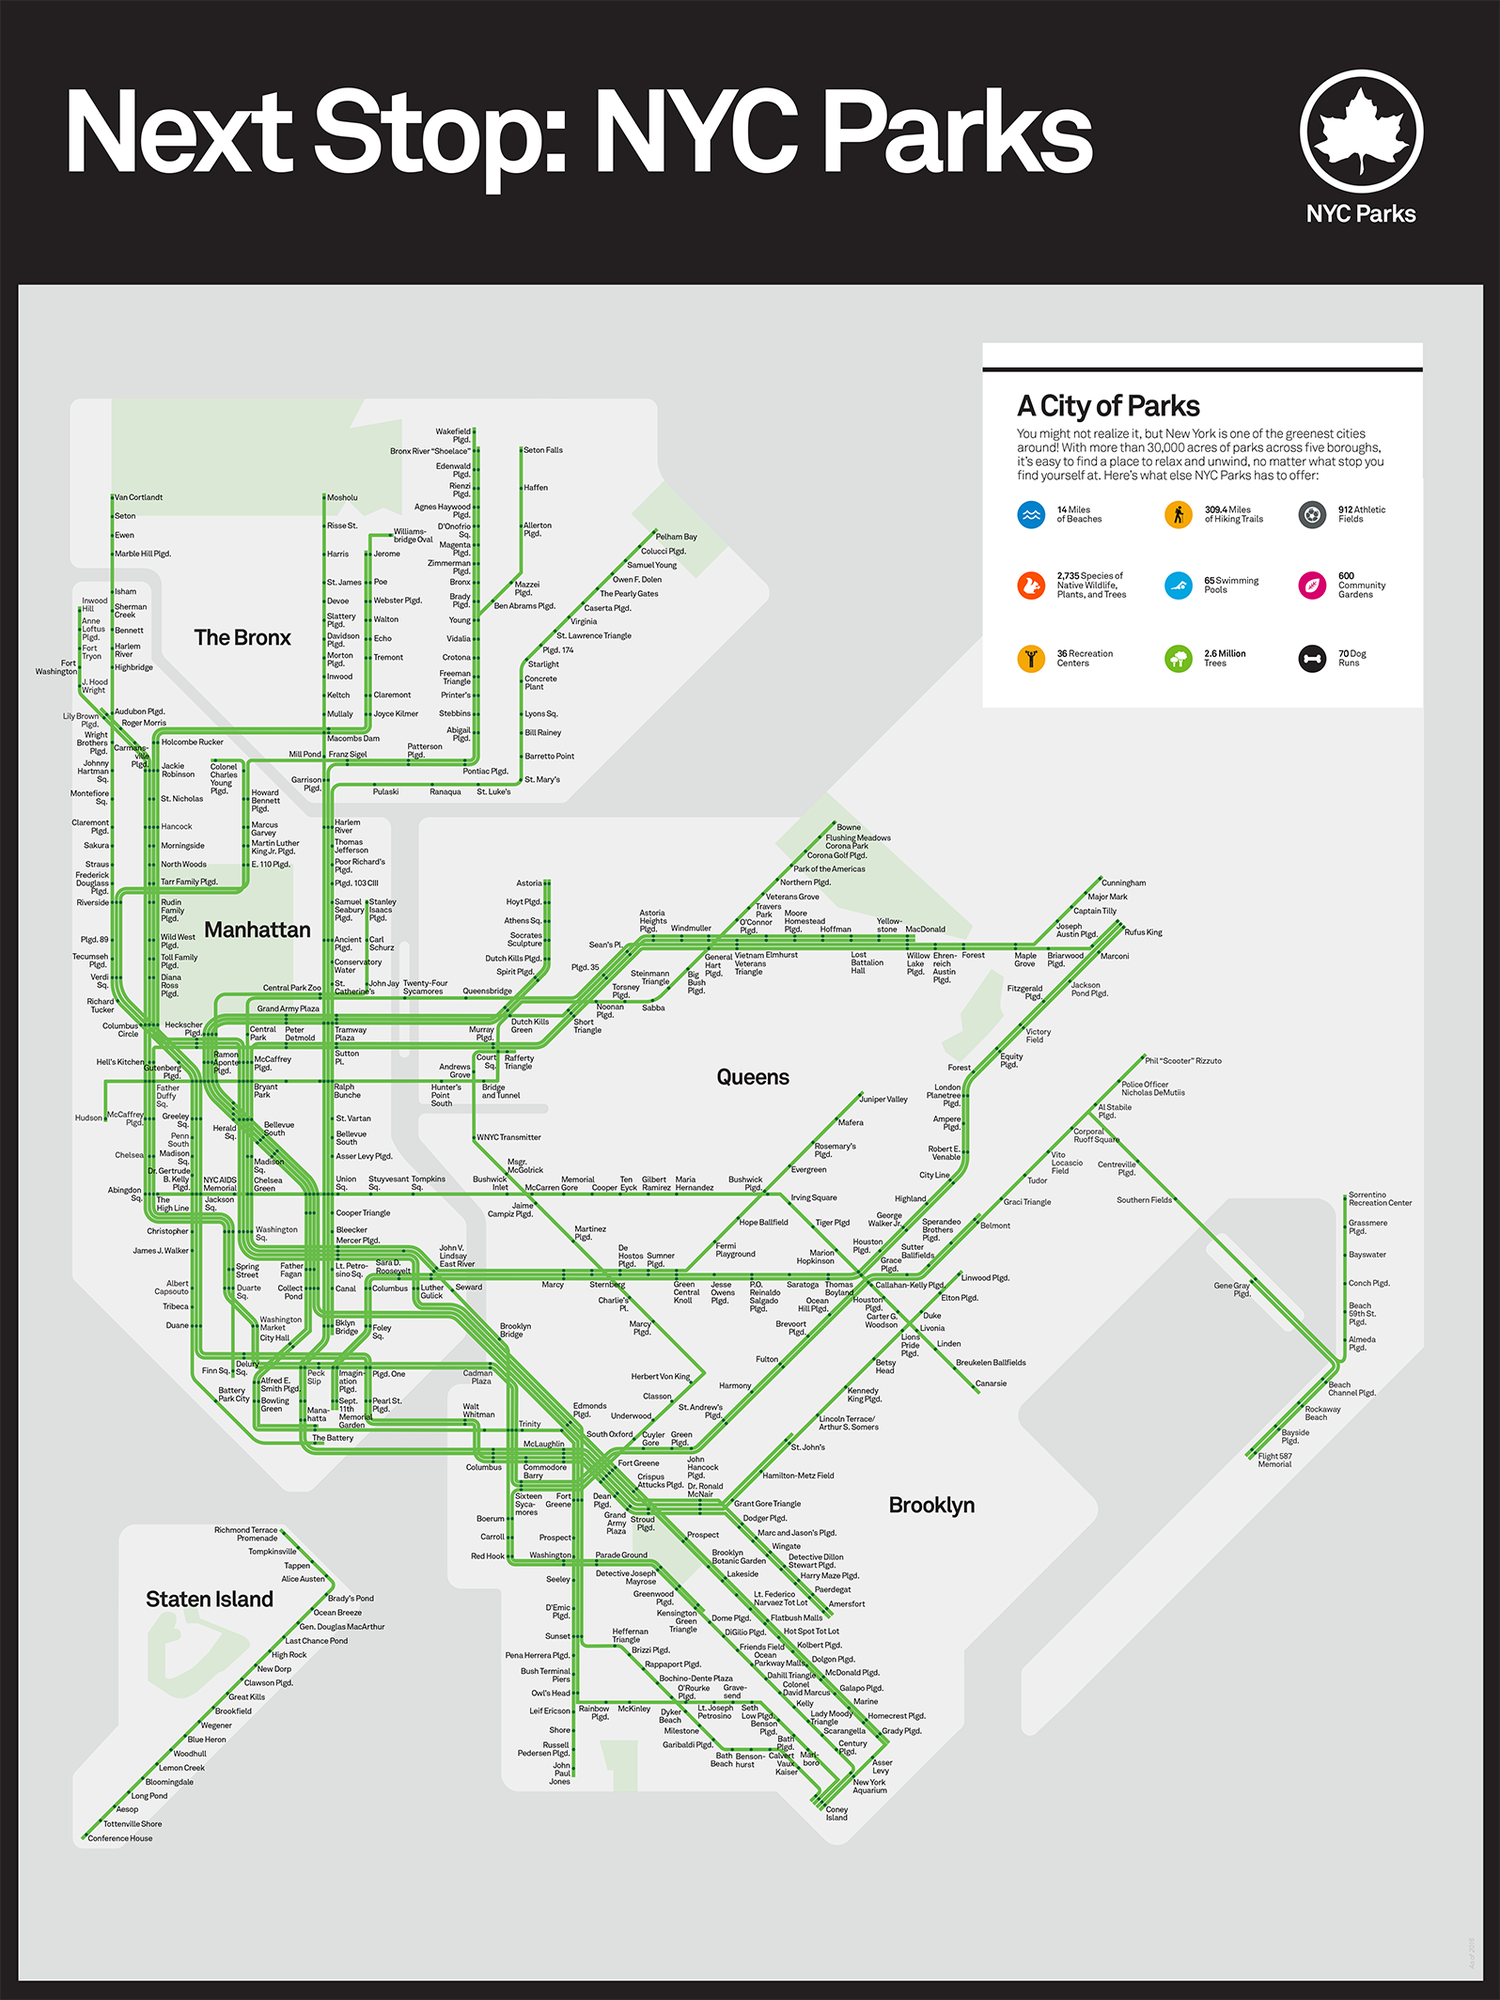 Interactive Mta Subway Map.New York City Parks Department Releases Mta Subway Style Map Of All